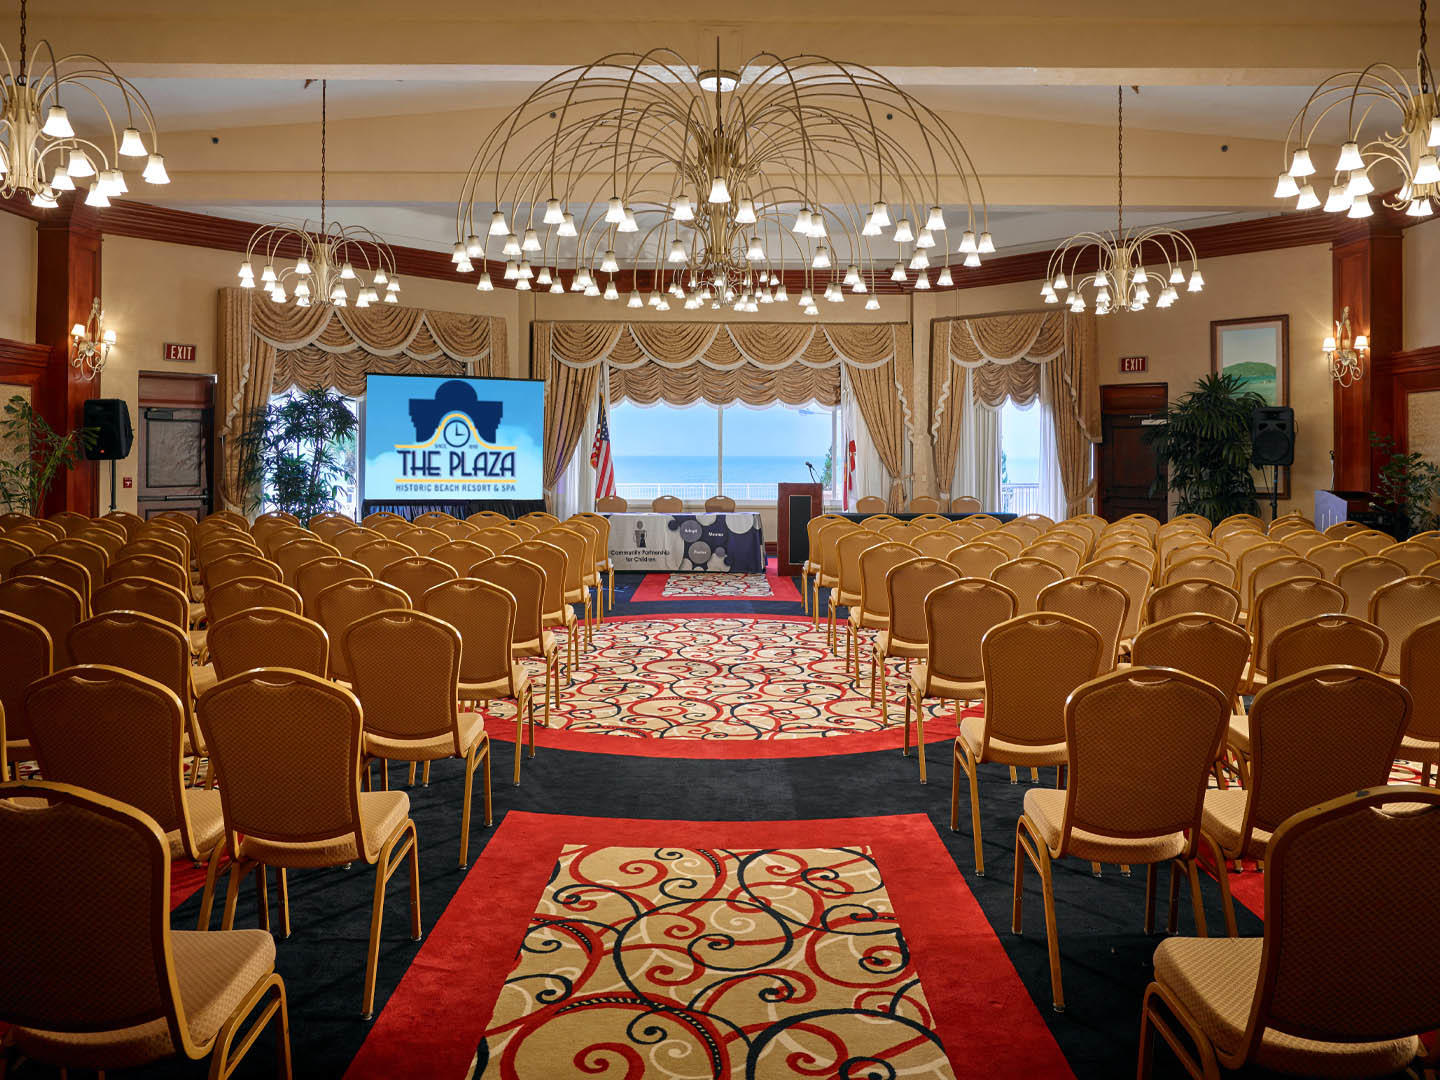 meeting room with rows od chairs and podium in front